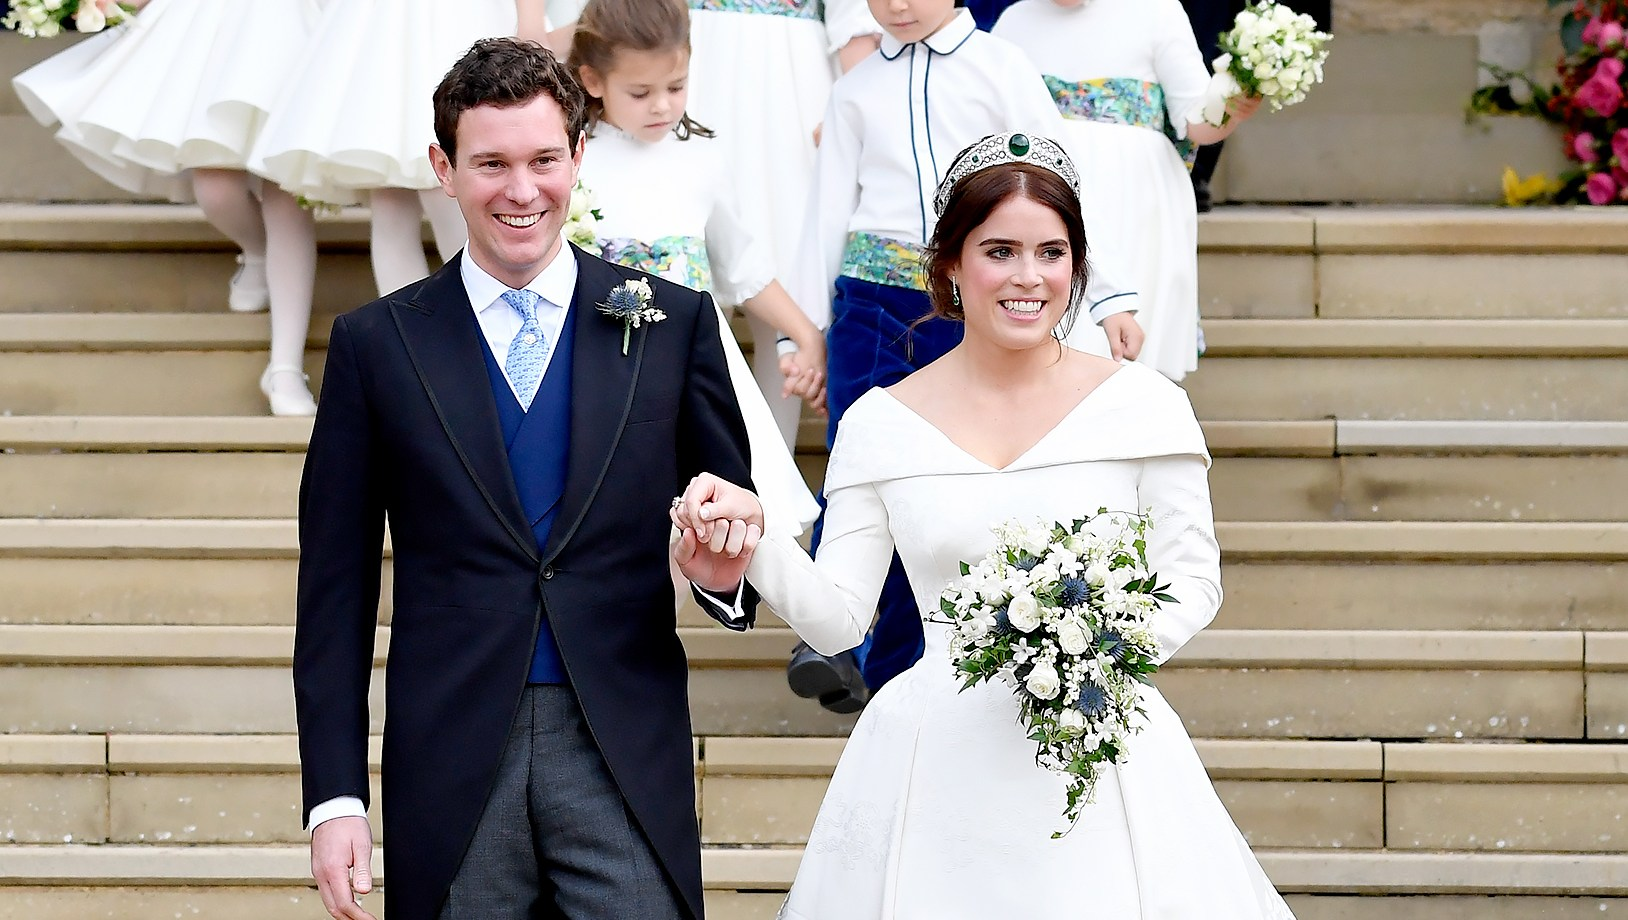 Princess-Eugenie-Jack-Brooksbank-wedding-11